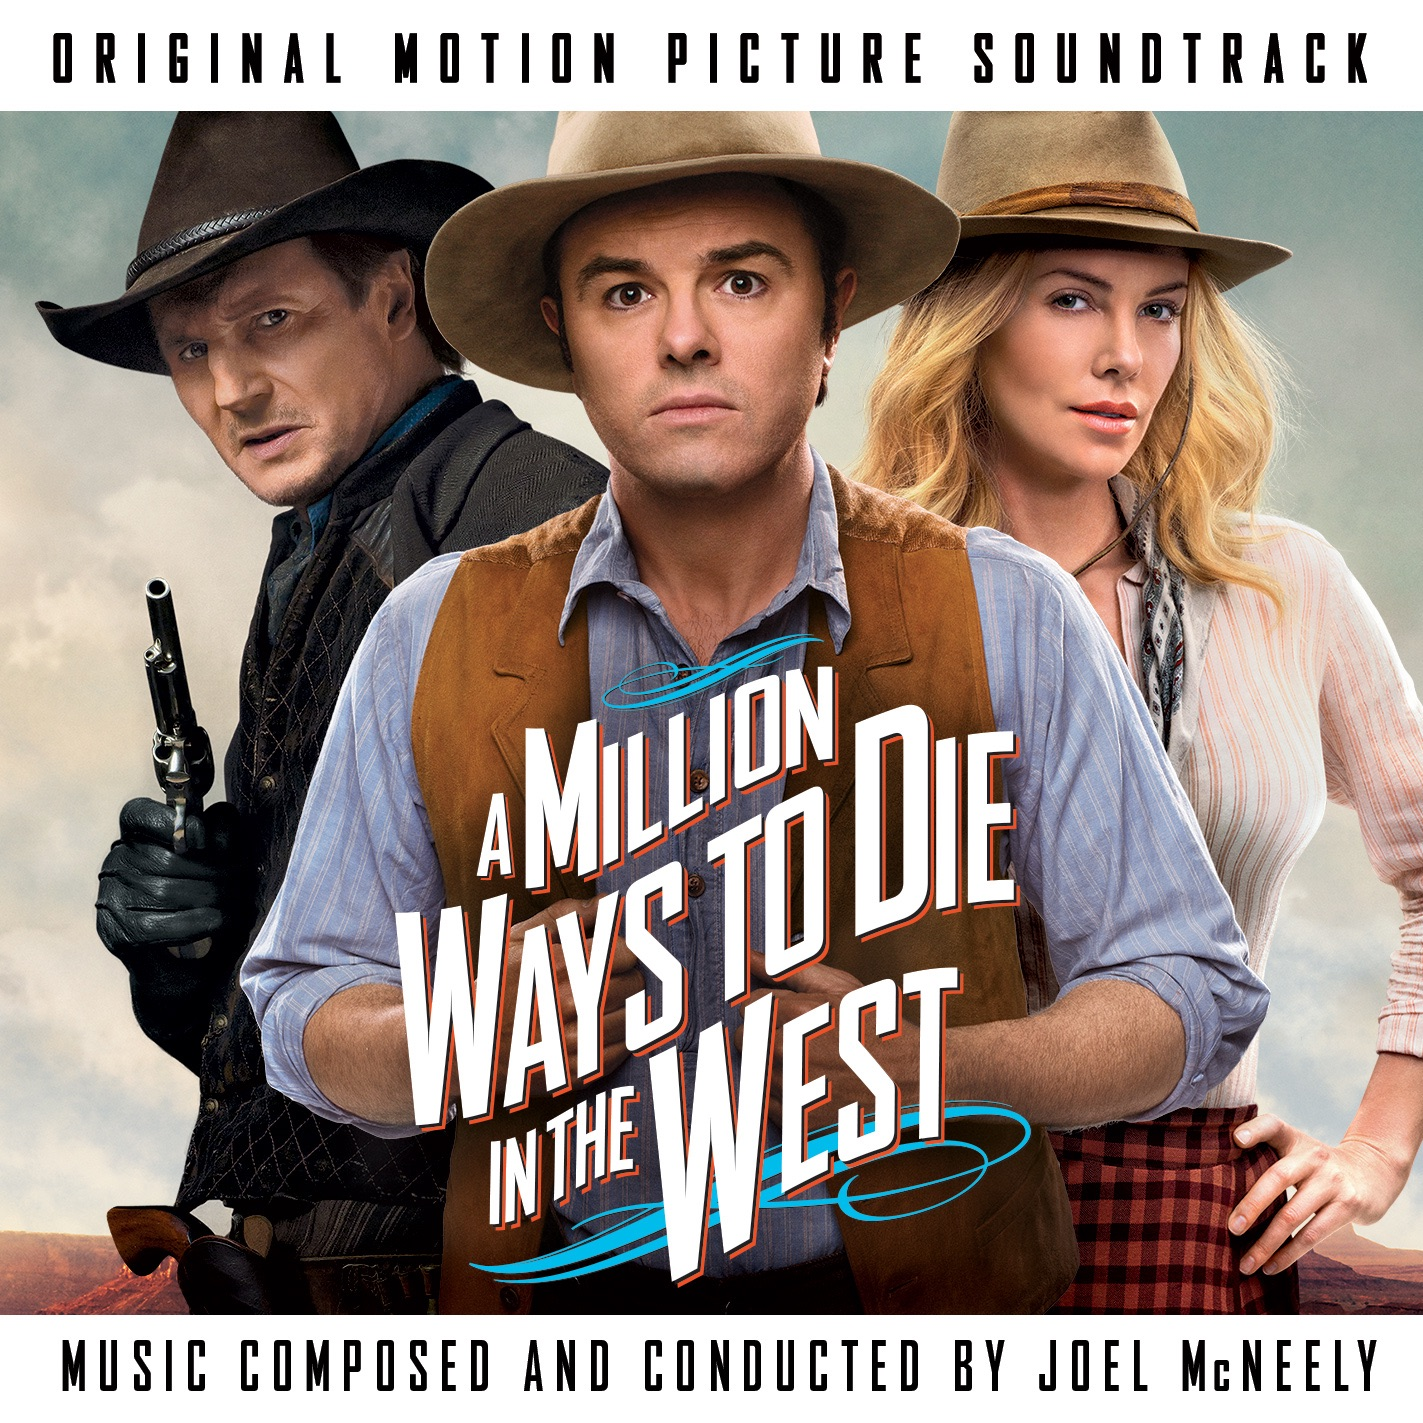 A Million Ways To Die In the West (Original Motion Picture Soundtrack)